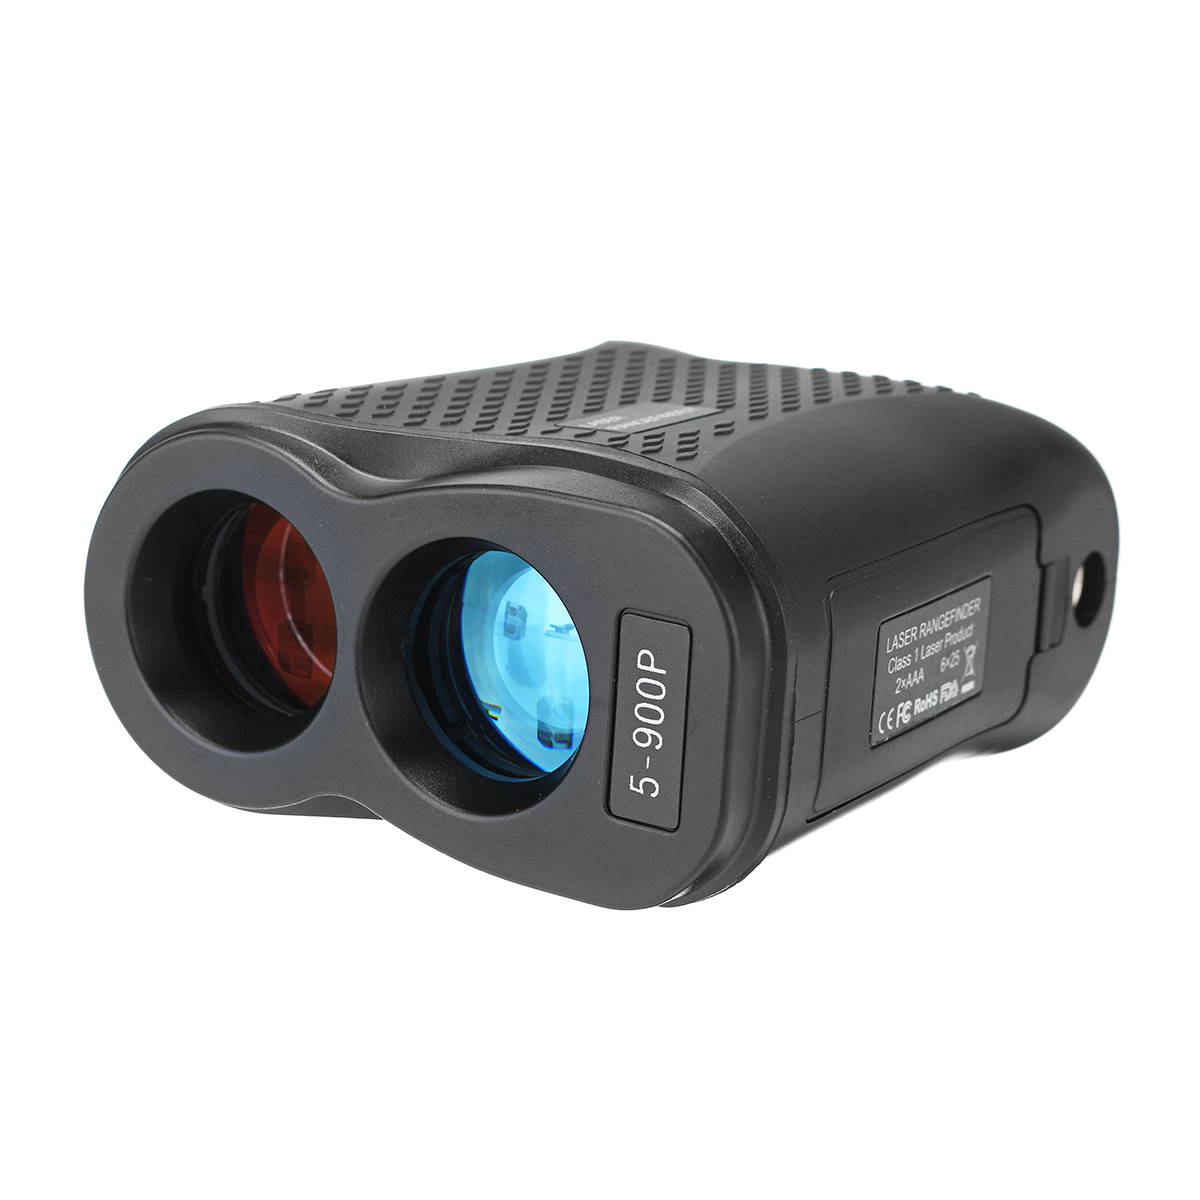 900M 6X Golf Rangefinder Outdoor Camping Hunting Measur